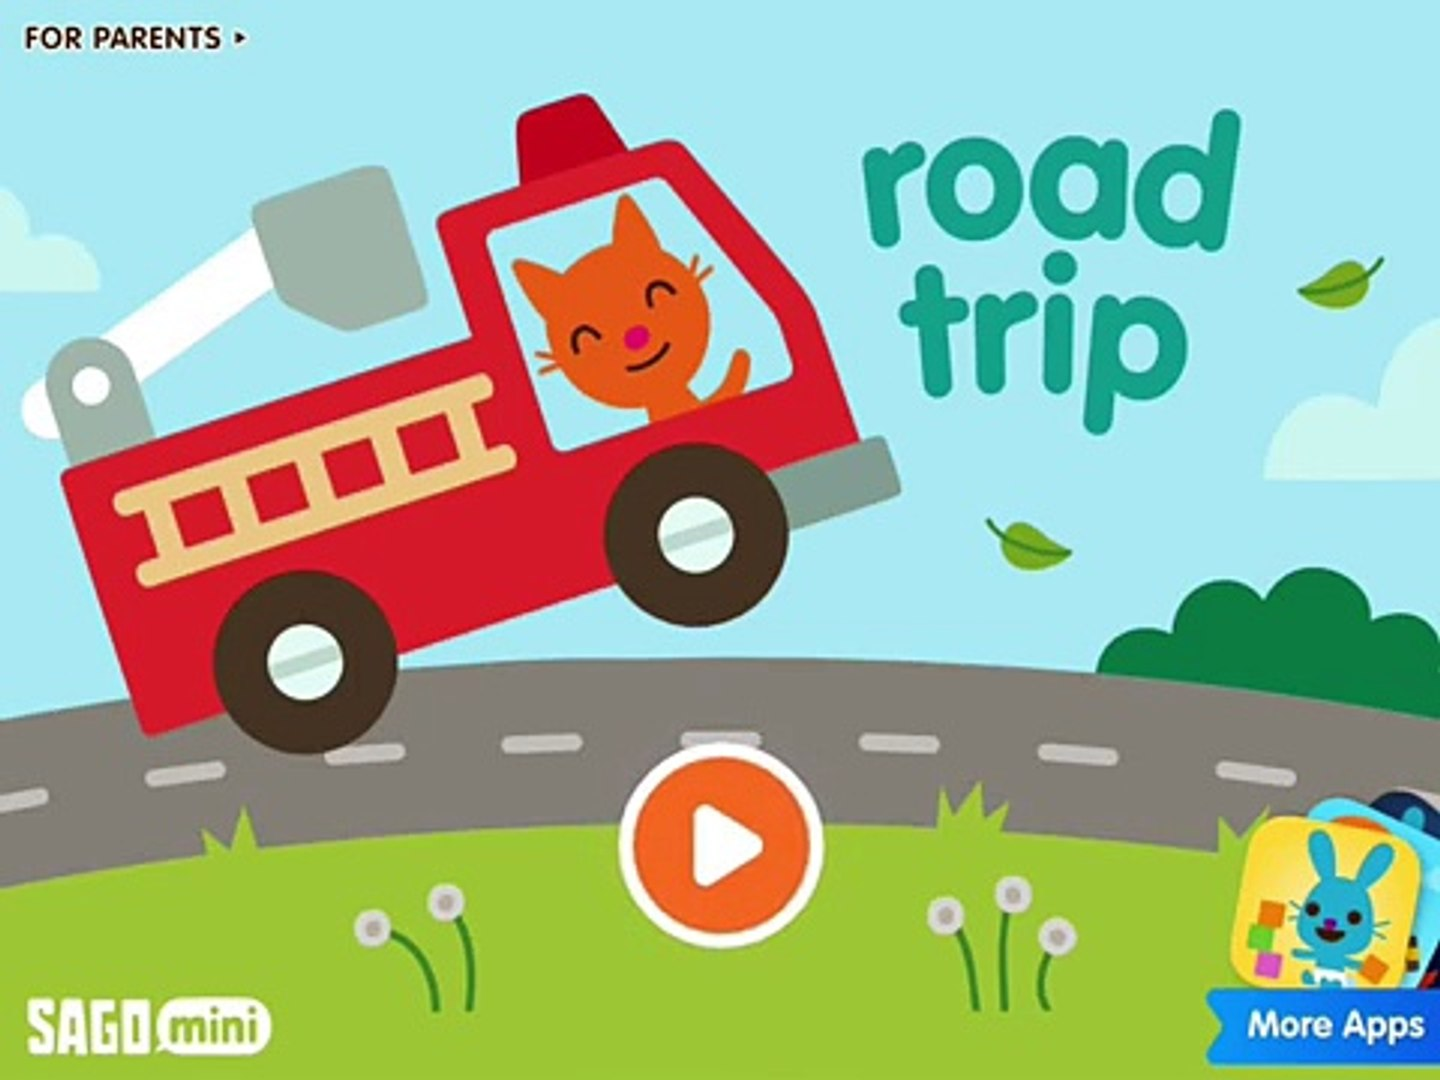 Sago Mini Road Trip | School bus | Саго Мини В Путь-Дорогу - Childrens cartoon game